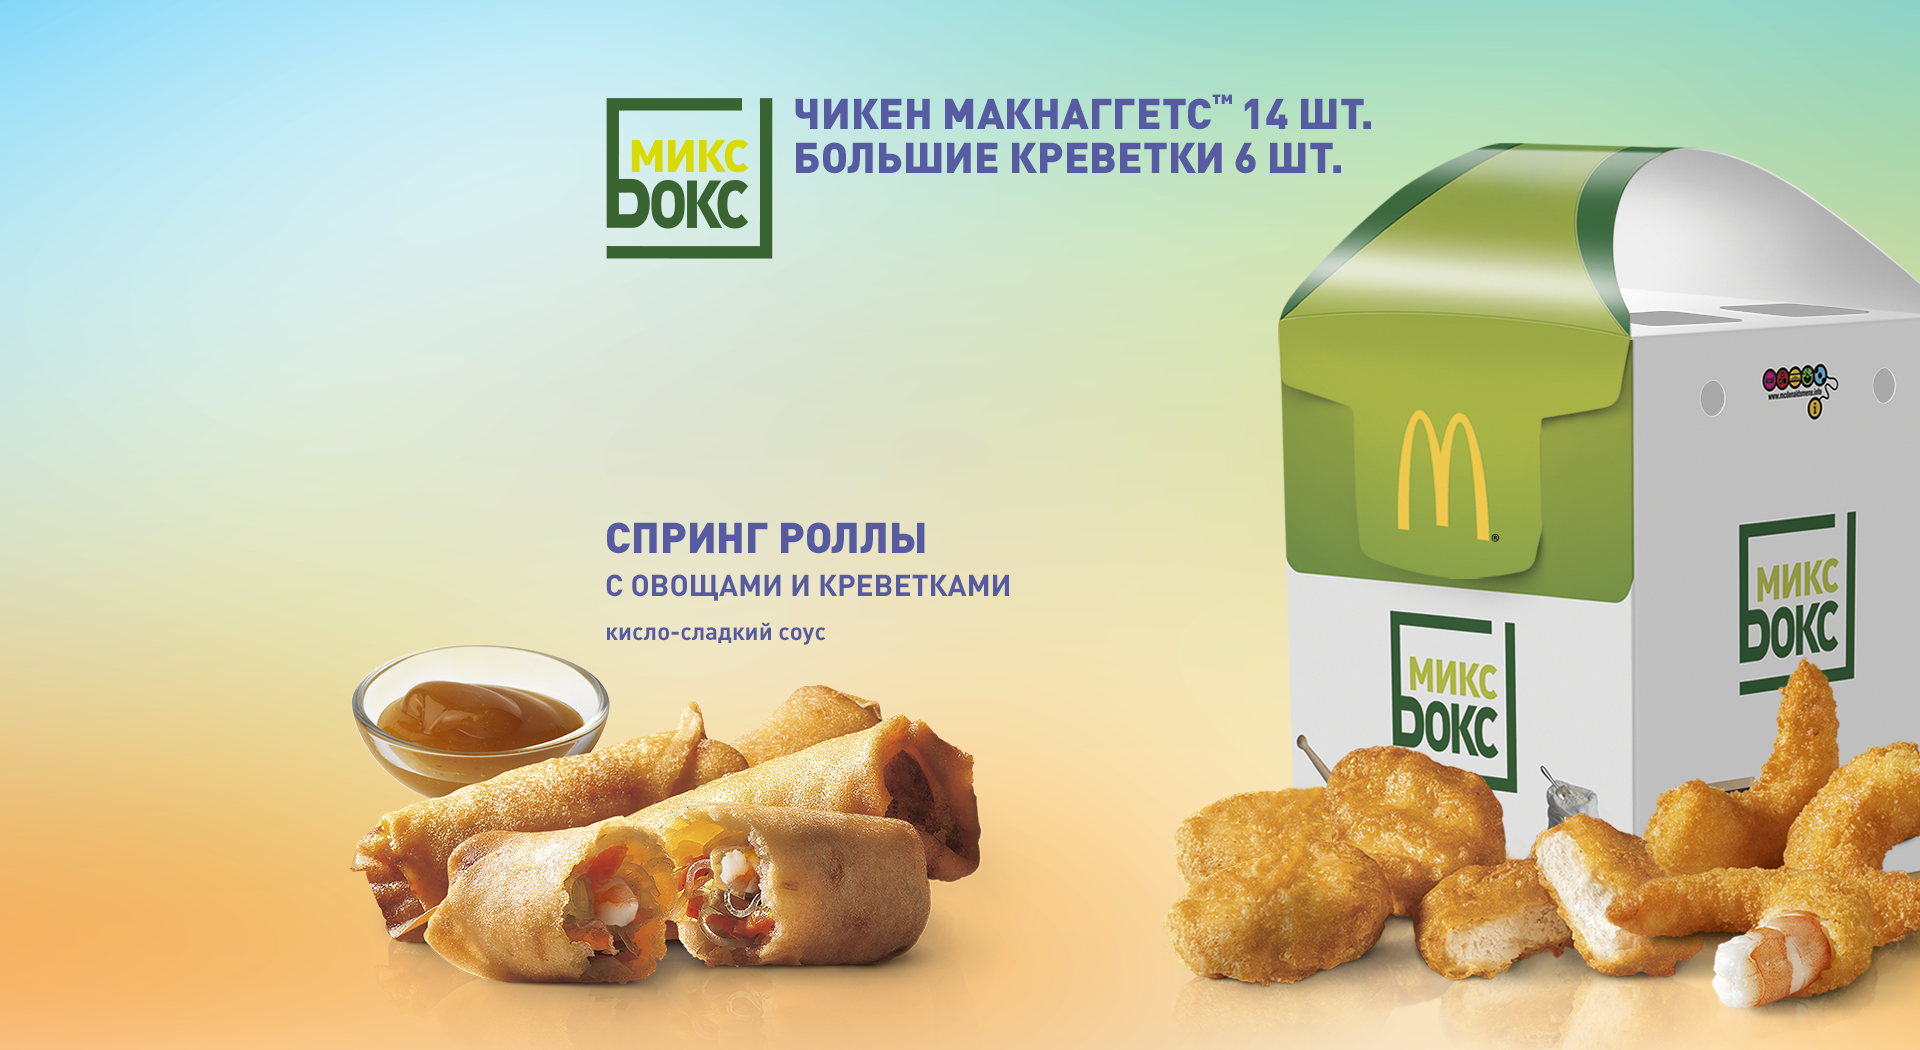 New! Mix Box and Spring Rolls